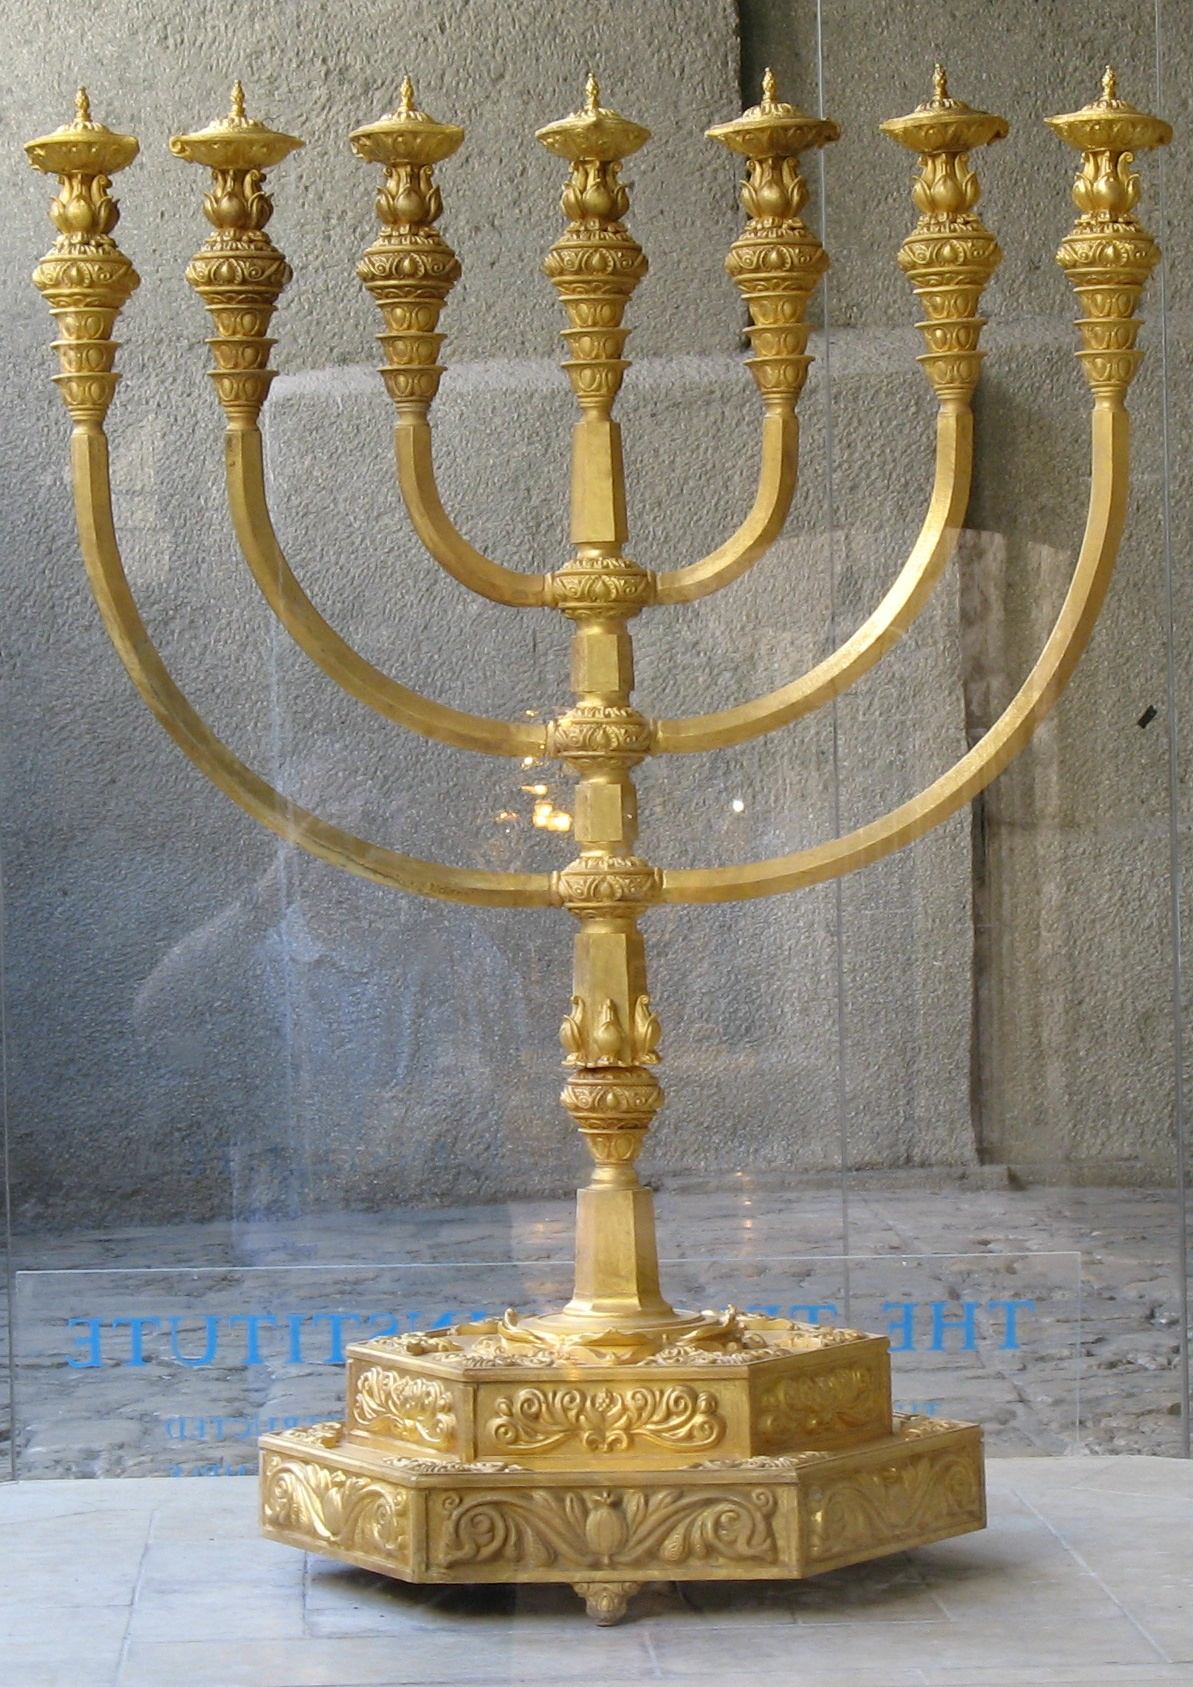 The rebuilt Menorah